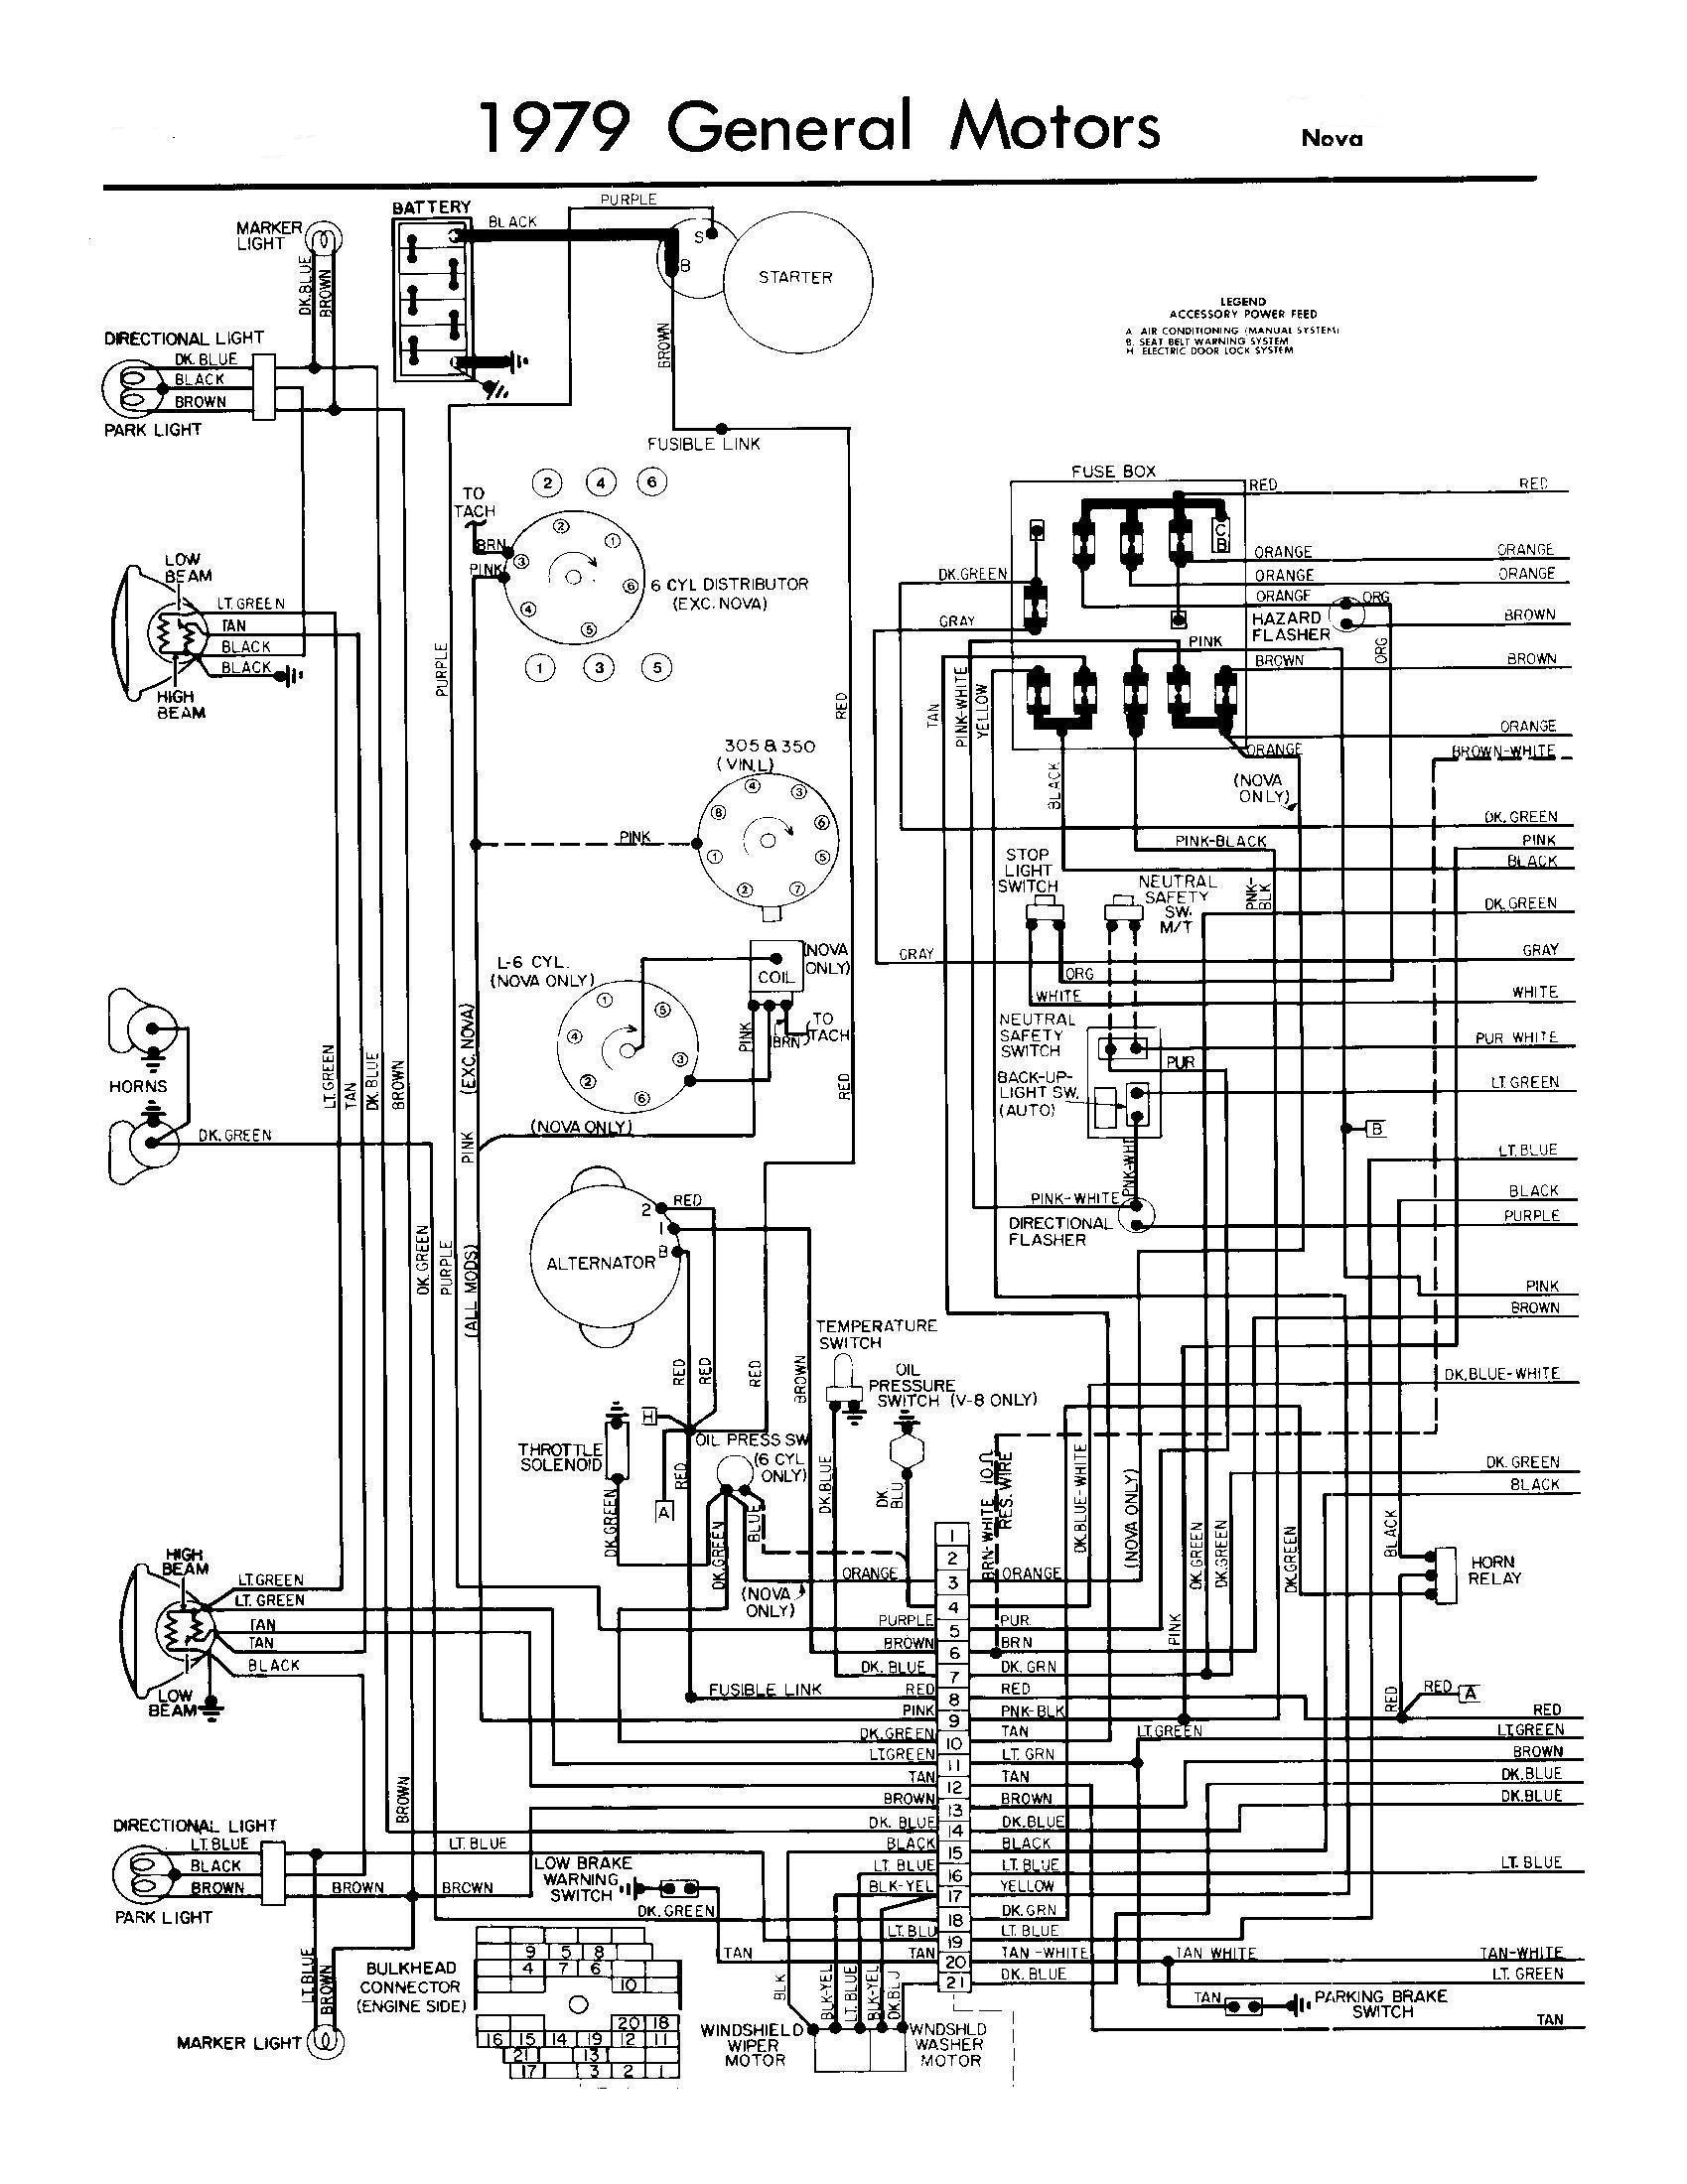 2012 toyota yaris engine diagram